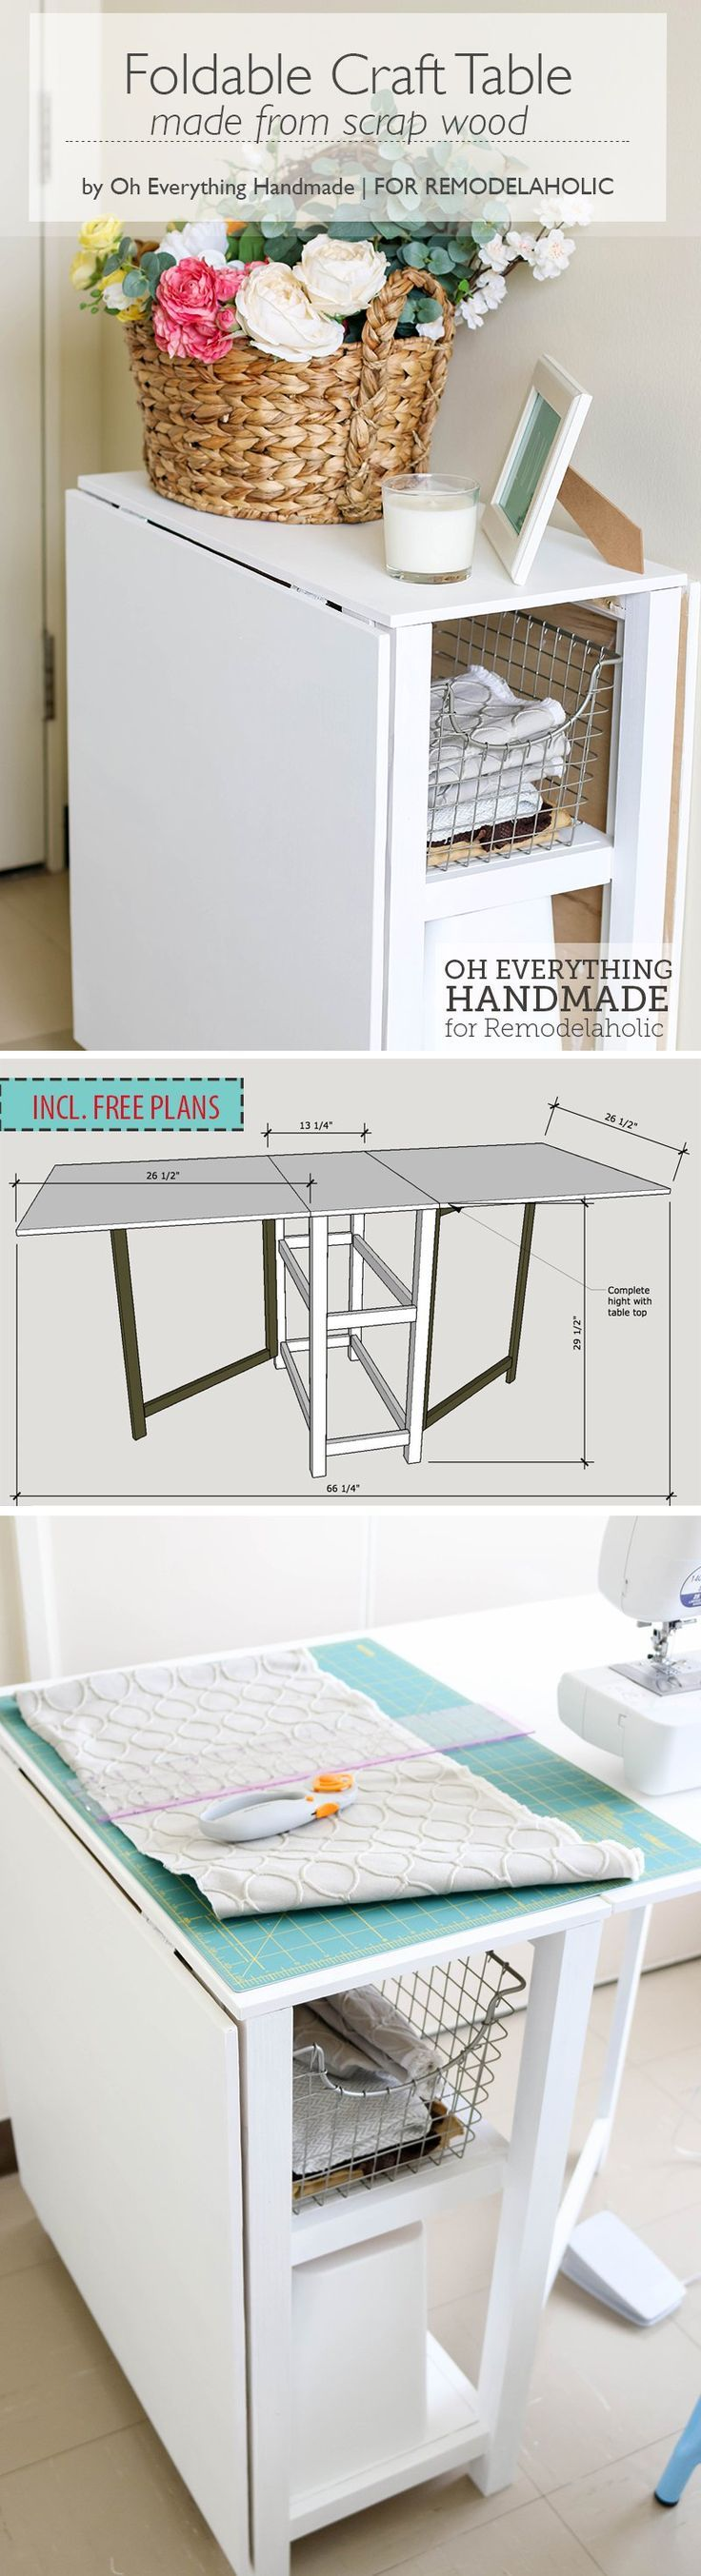 Diy Foldable Craft Table Diy Sewing Table Woodworking Projects Diy Craft Table Diy